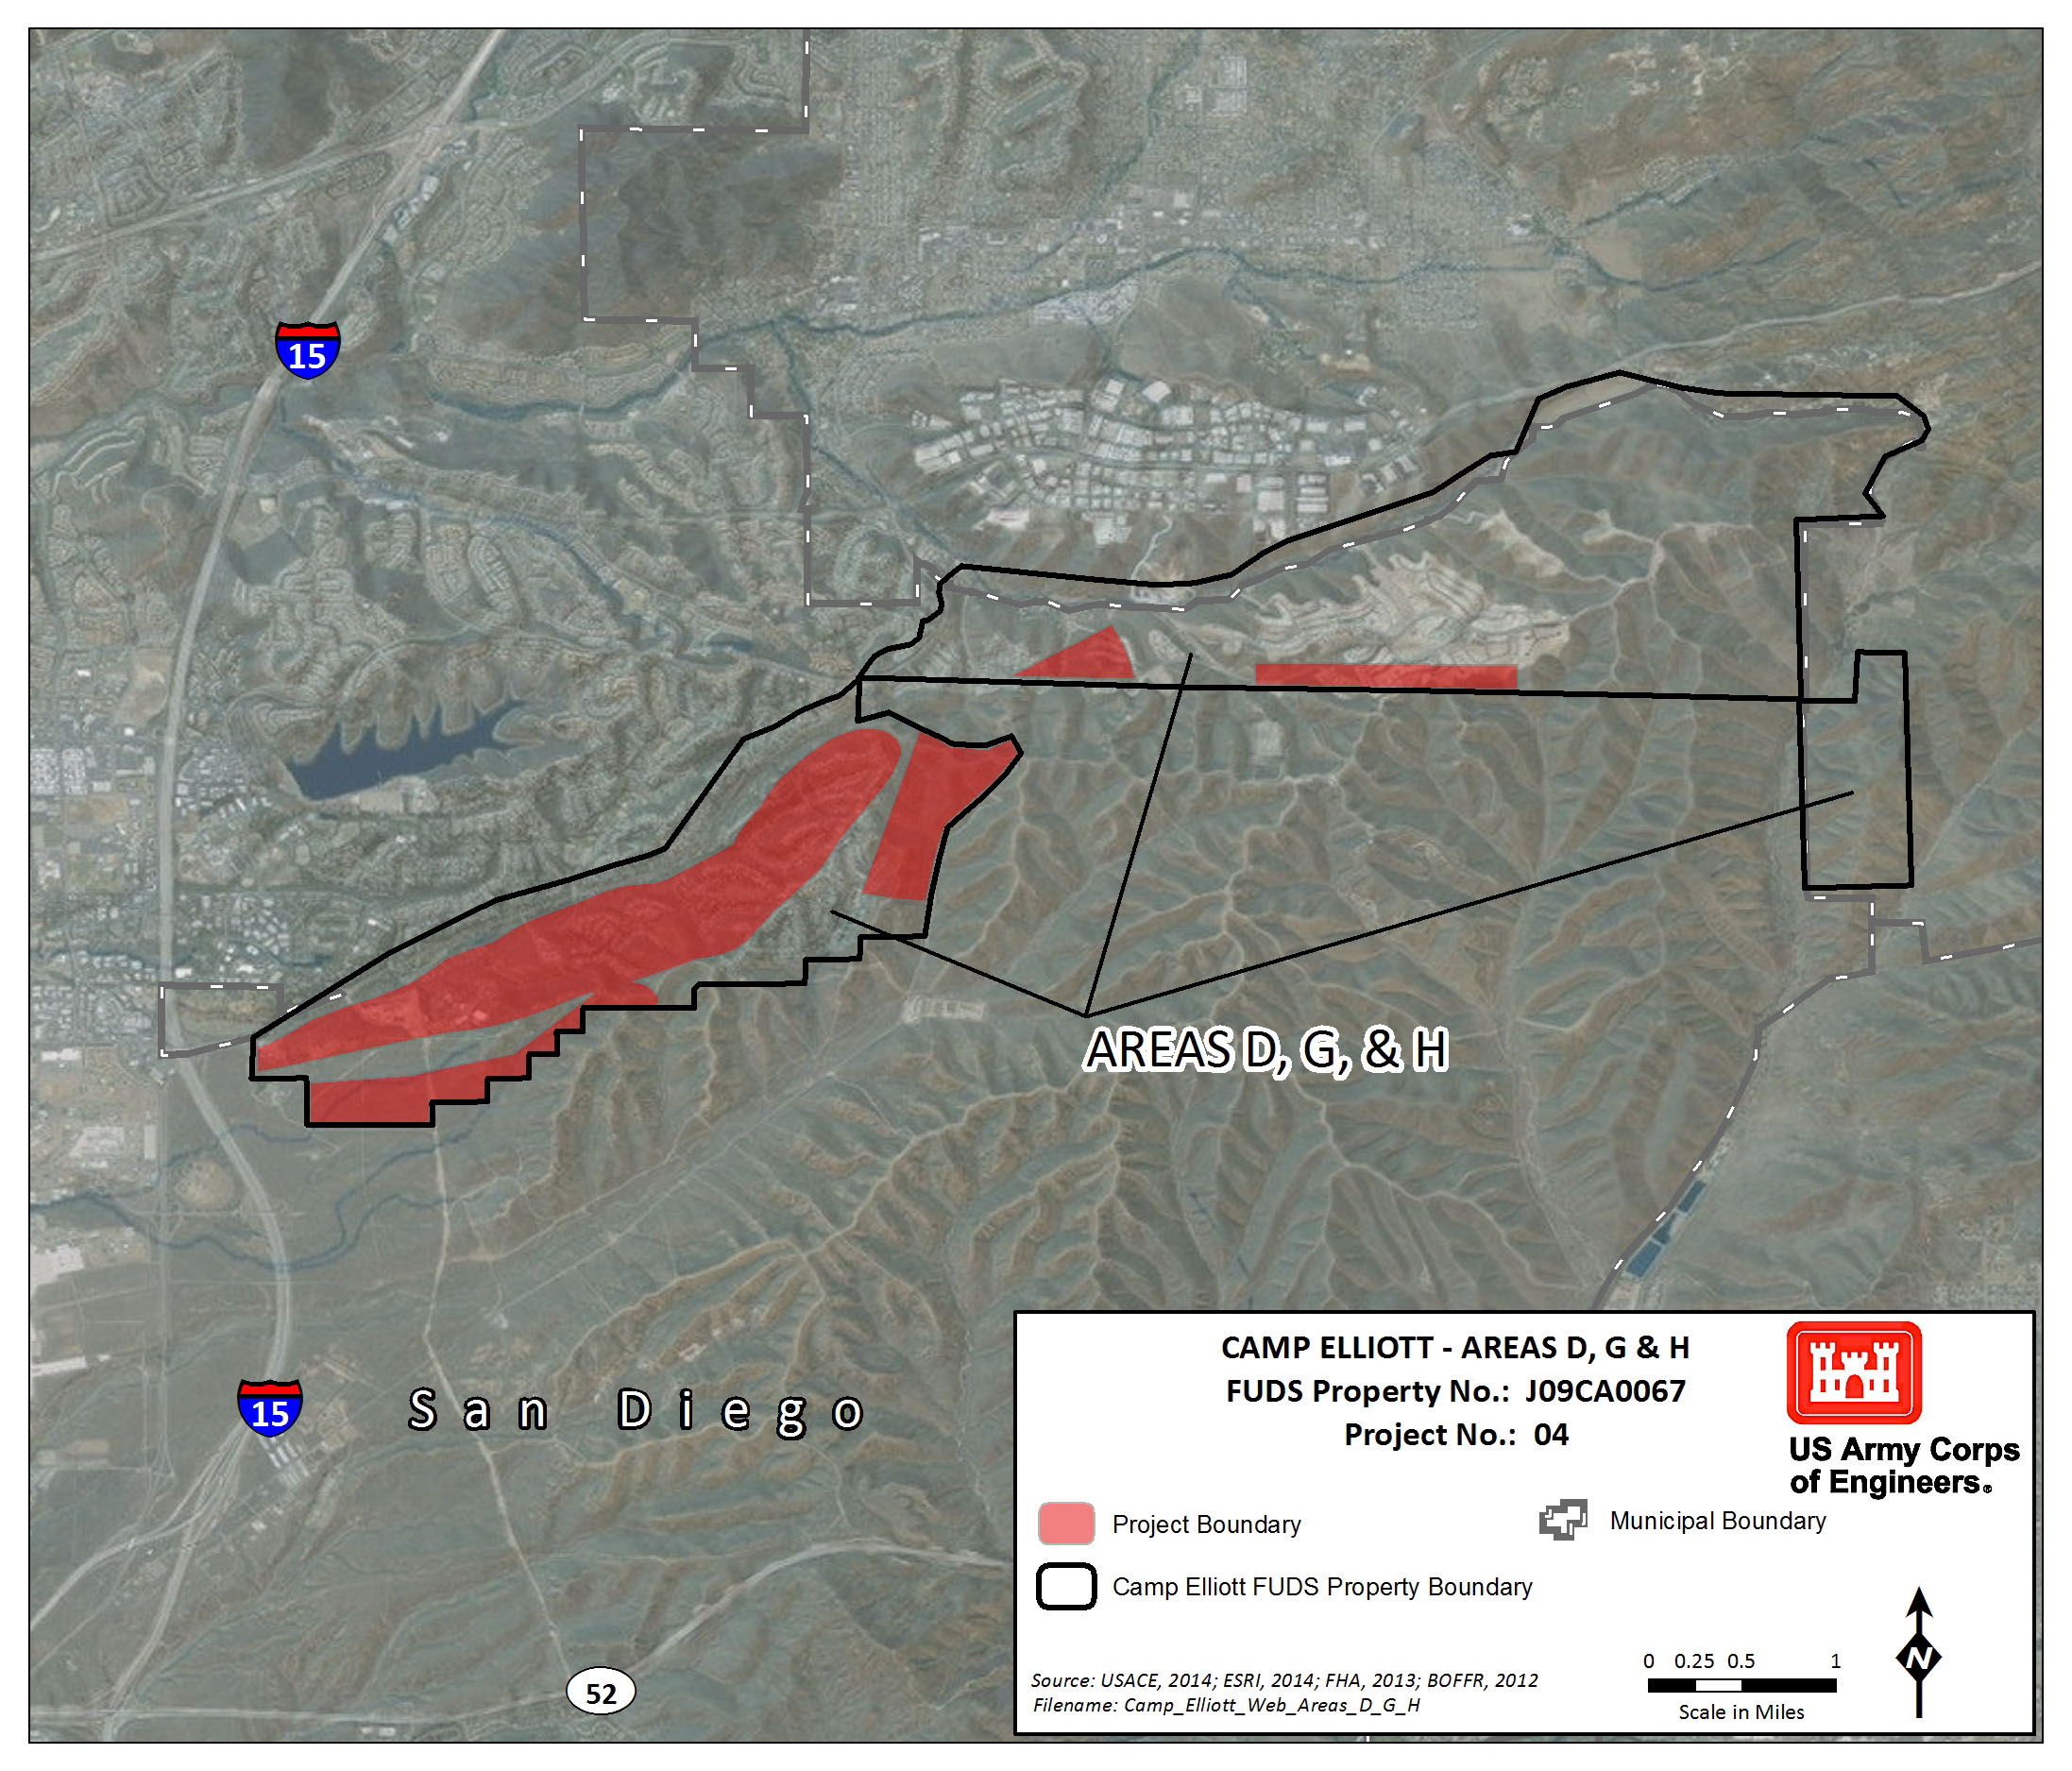 The Former Camp Elliott Is Located Approximately 12 Miles Northeast Of Downtown San Diego California The Corps Of Engineers Is Investigating And